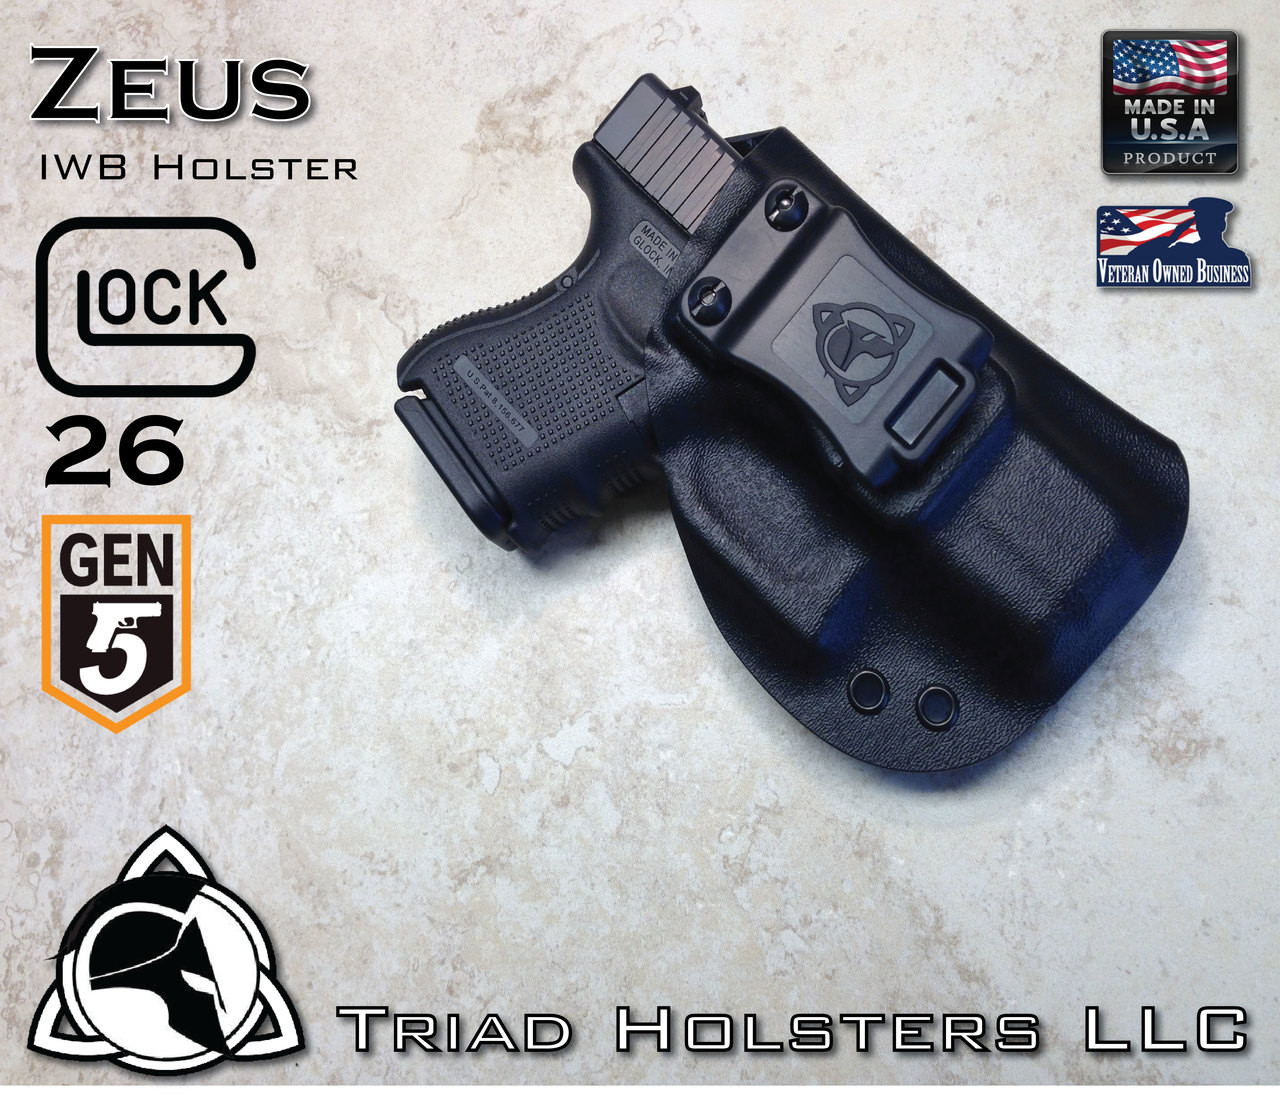 Kydex Holster Glock 26 Gen 5 Zeus IWB Inside the Waistband